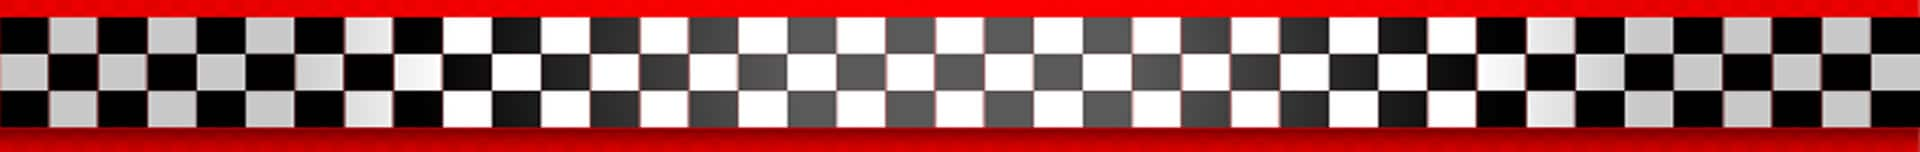 Akerly Childs Racing Banner